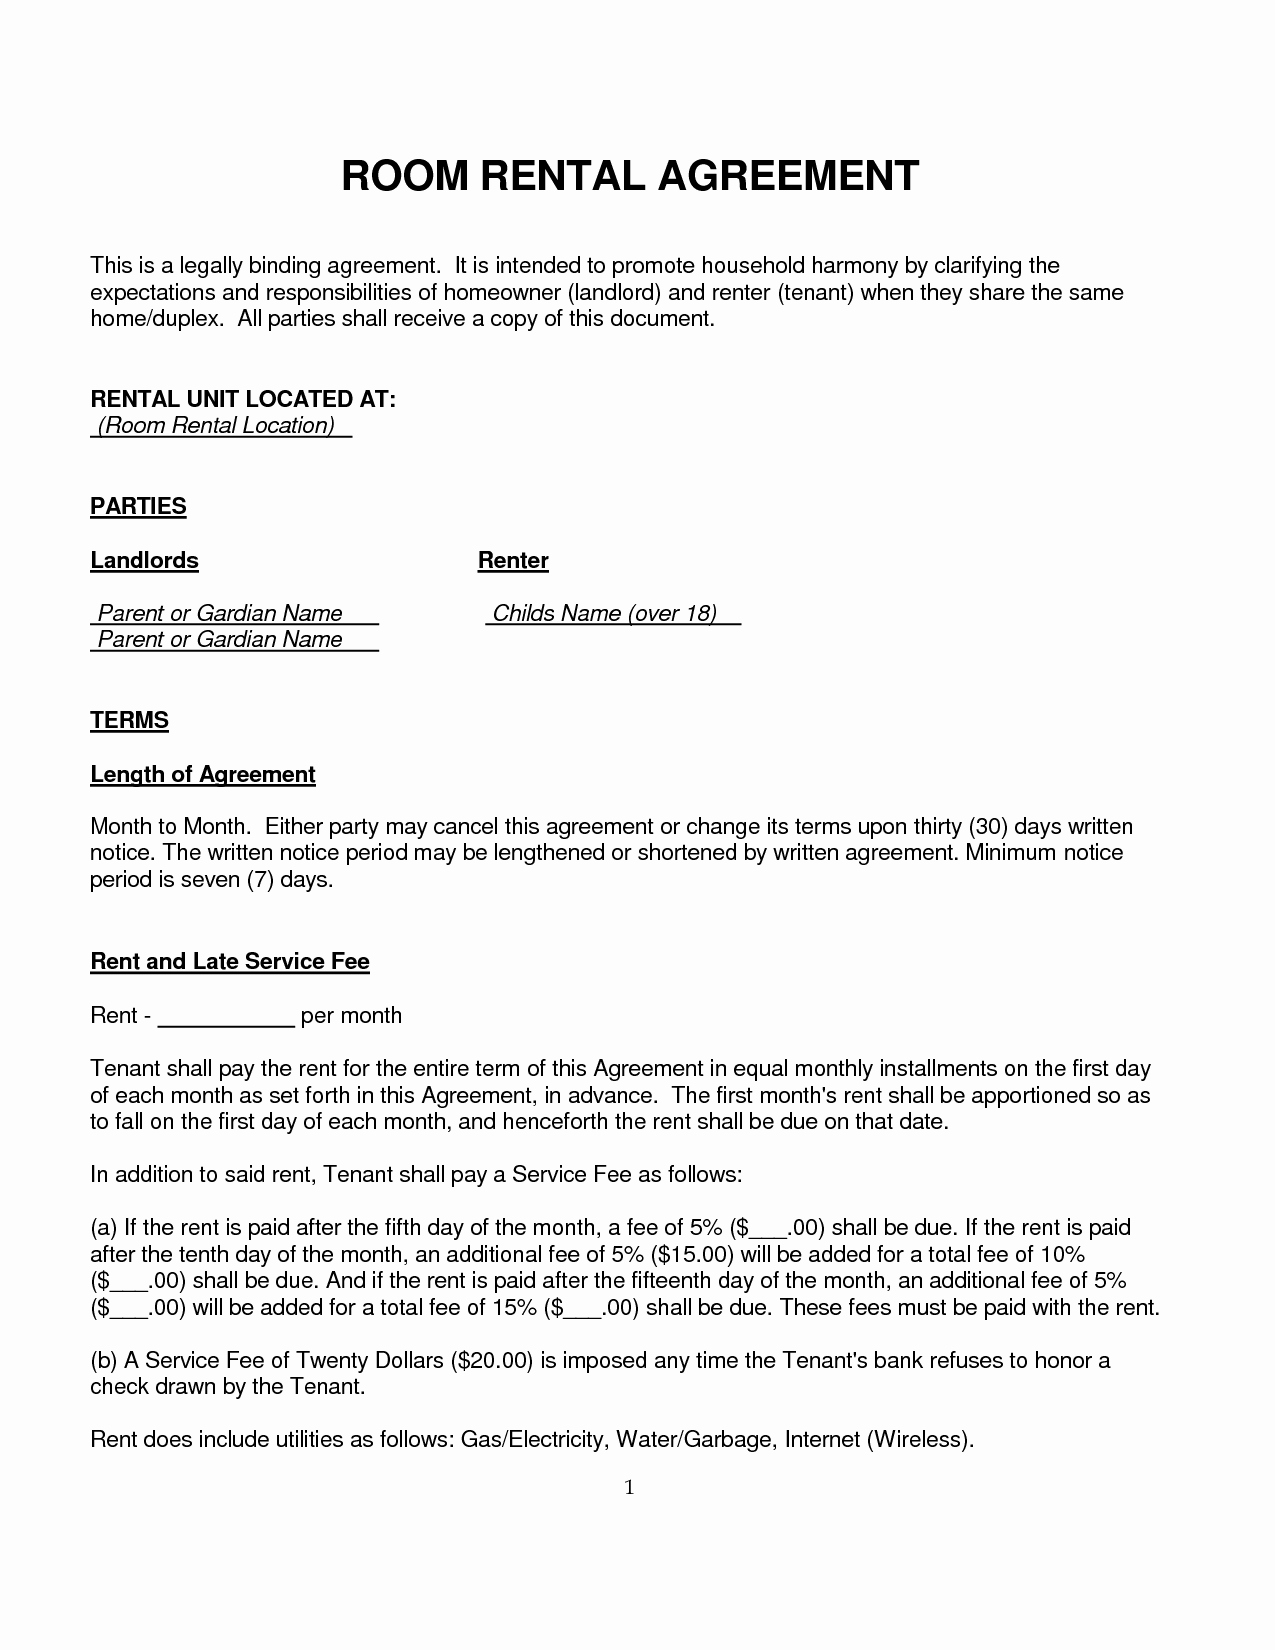 Living Agreement Template Awesome Tenancy Agreement Template Uk Gfkemltm 1275×1650